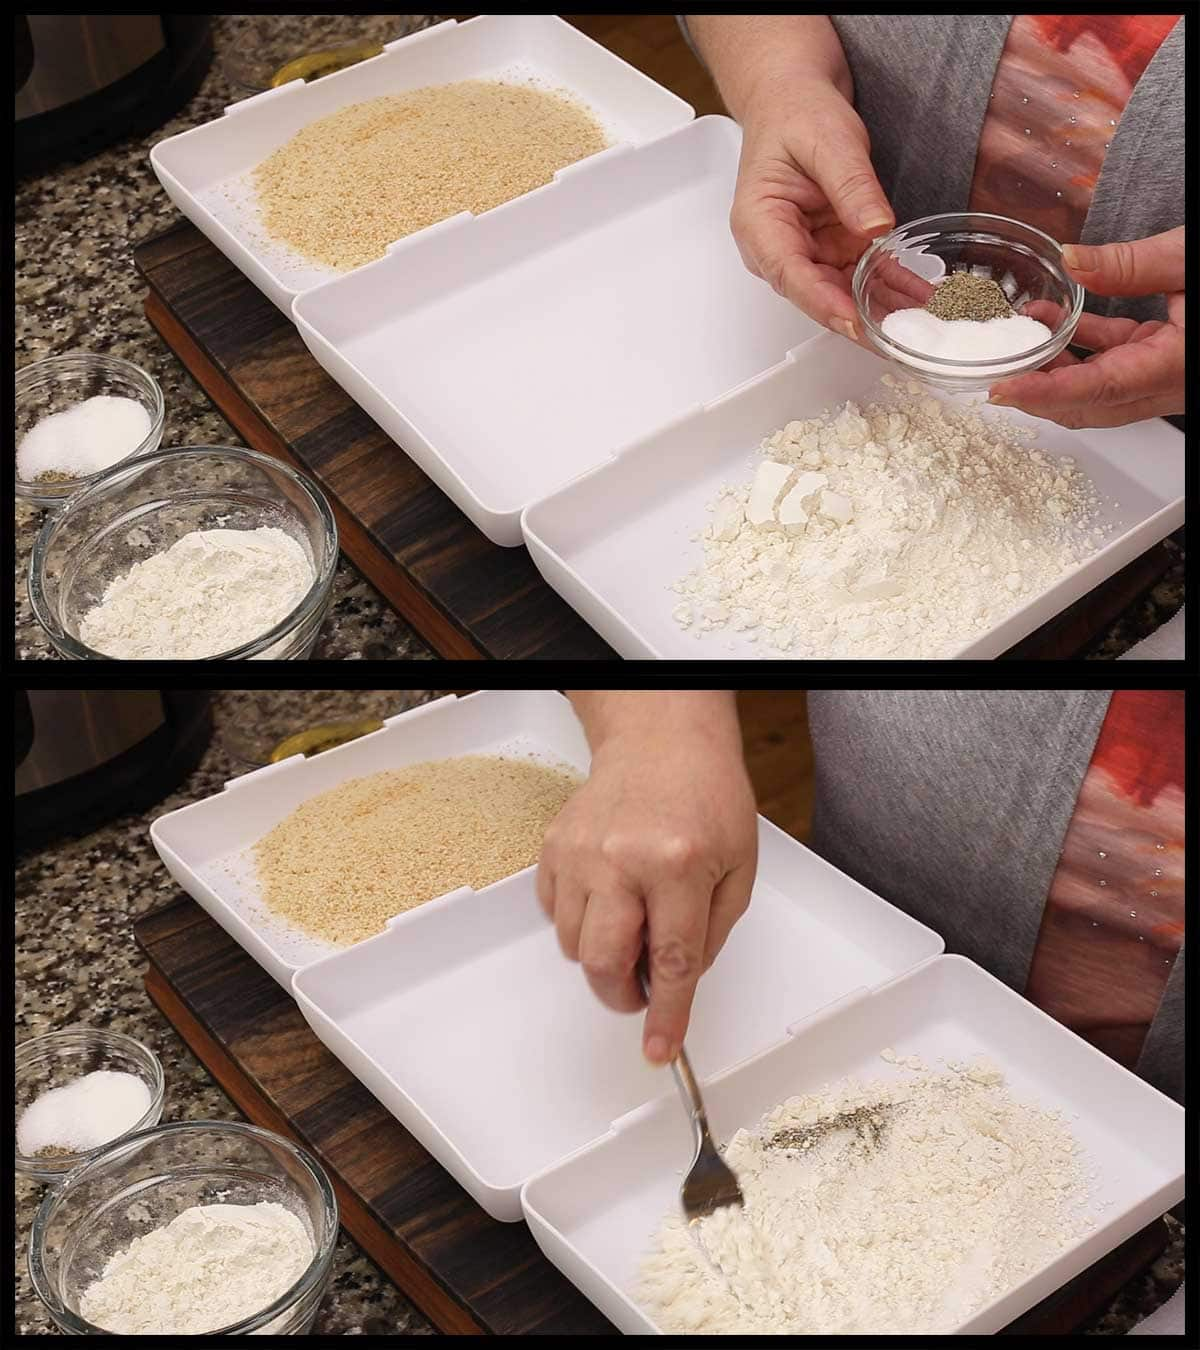 mixing the flour and seasonings in shallow coating tray